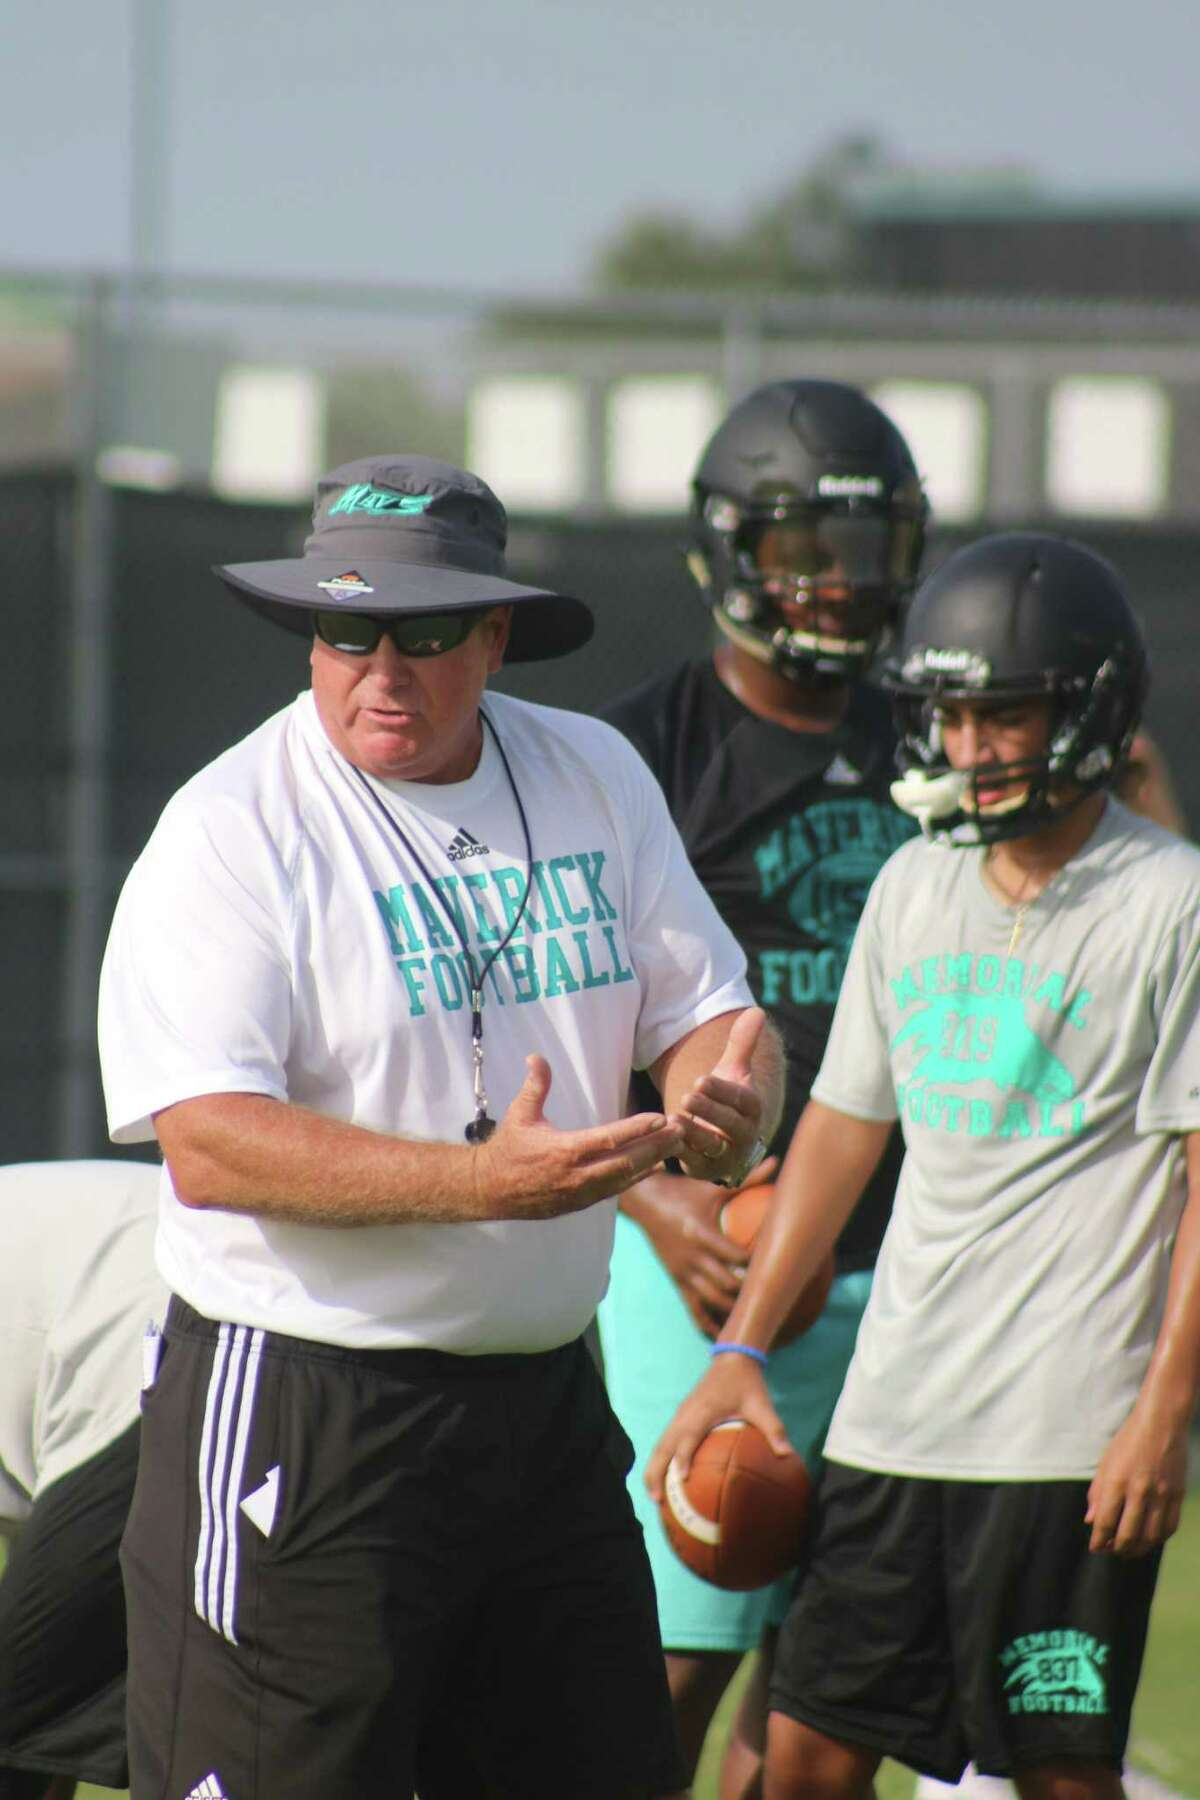 After seven seasons and 72 games, the most by a head football coach in the 15-year history of the school, Memorial head coach Chris Quillian has announced he's stepping down.